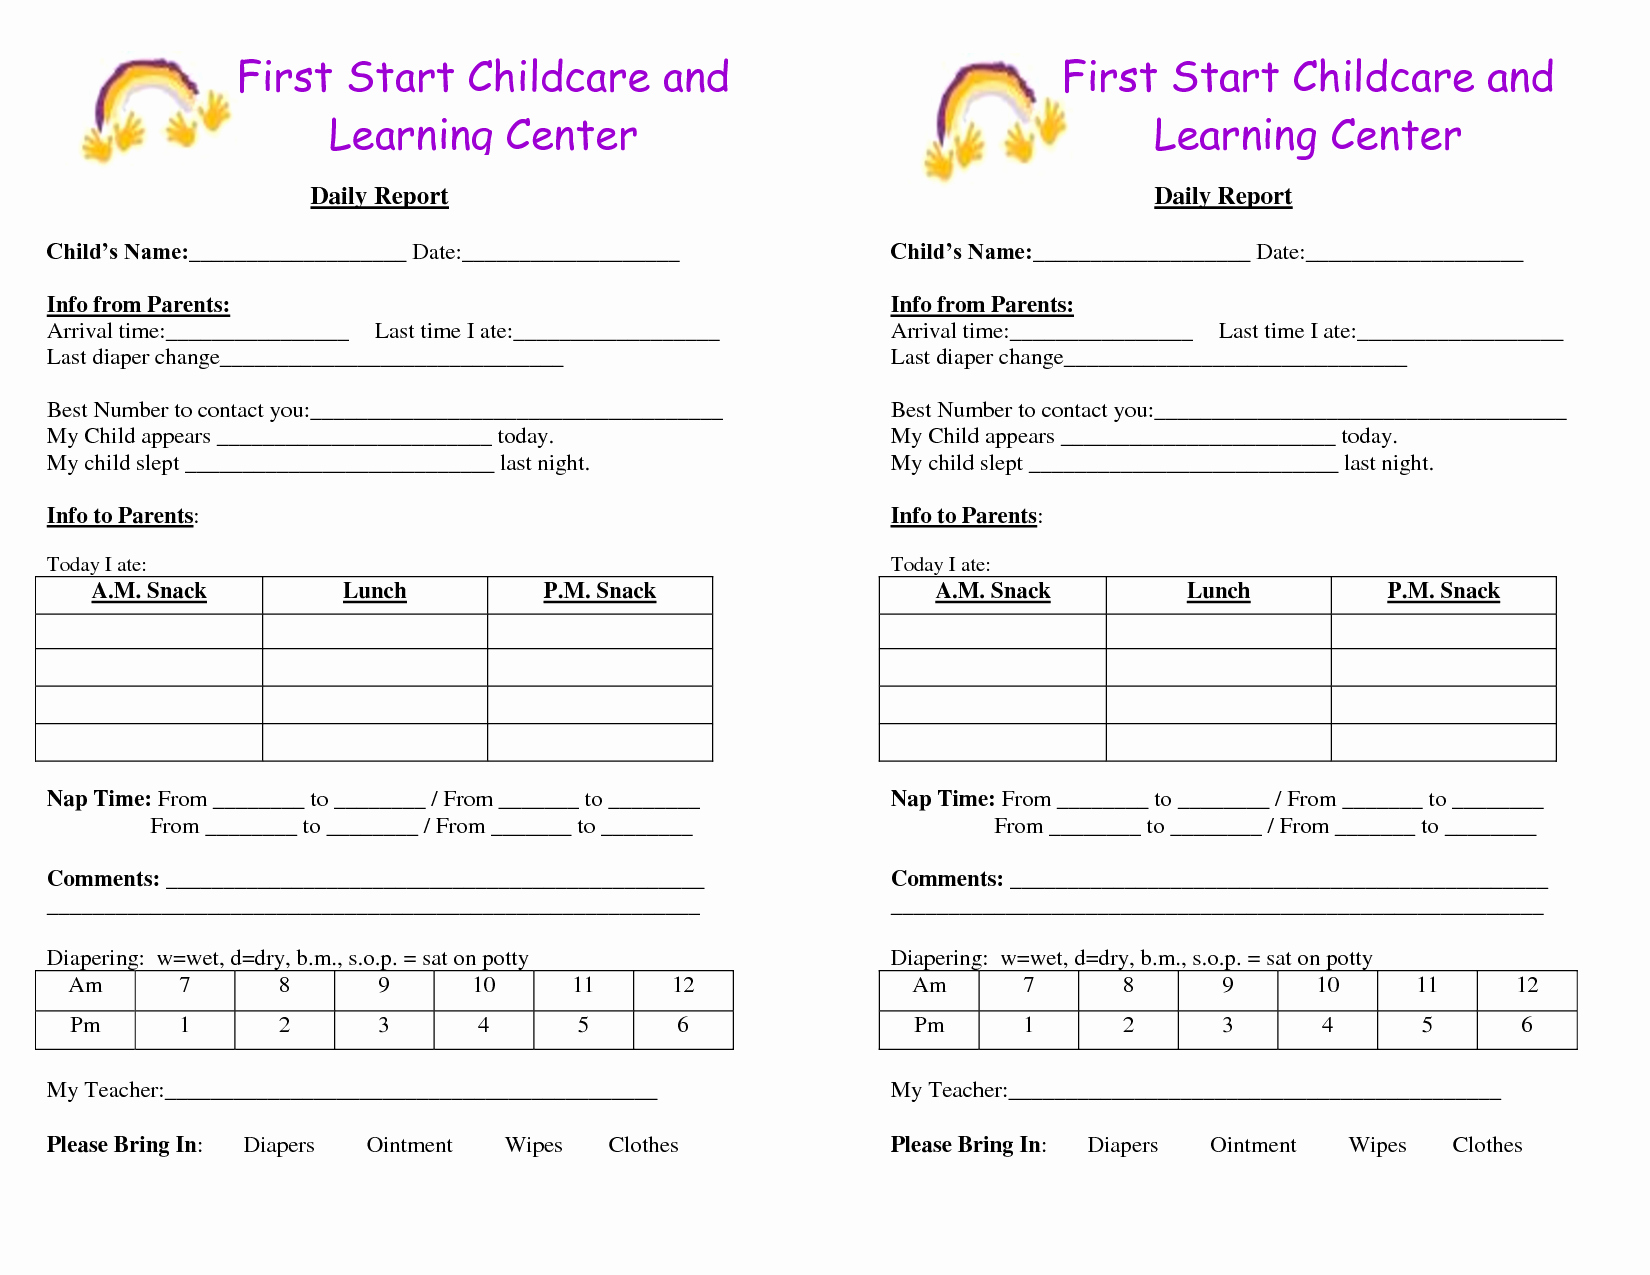 Preschool Daily Report Template Beautiful Baby Log forms Google Search Daycare forms